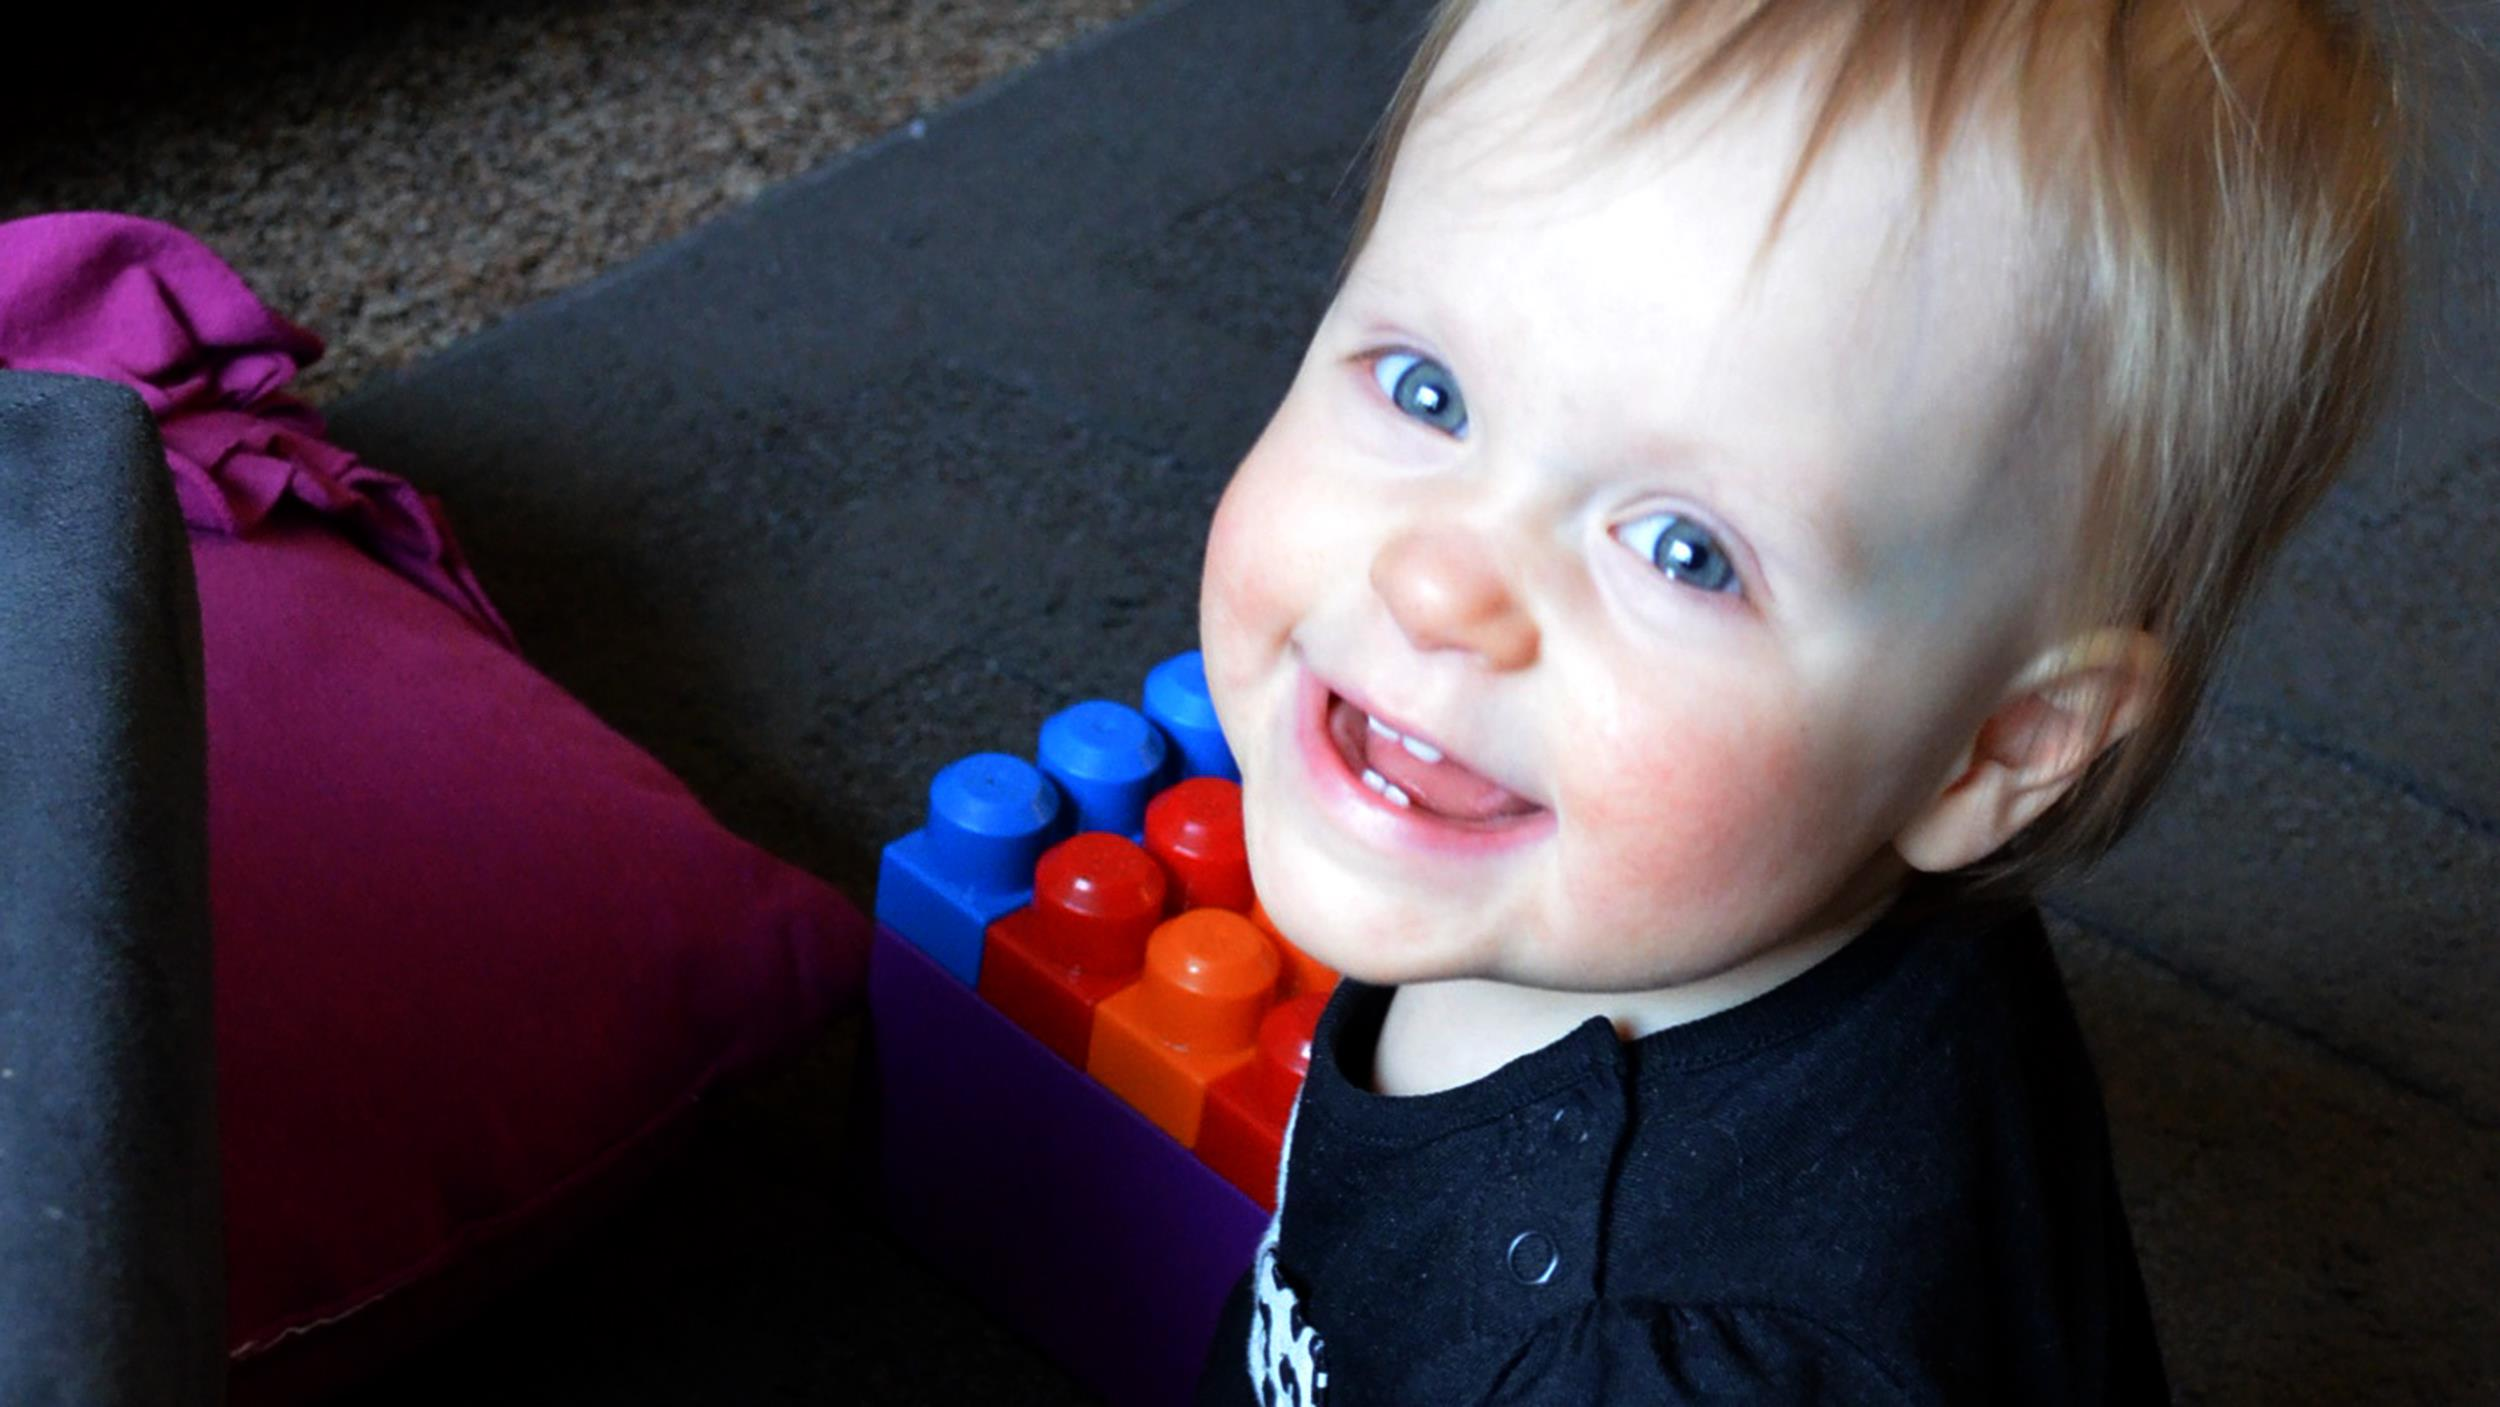 Parents of baby with spina bifida place hopes in fetal surgery